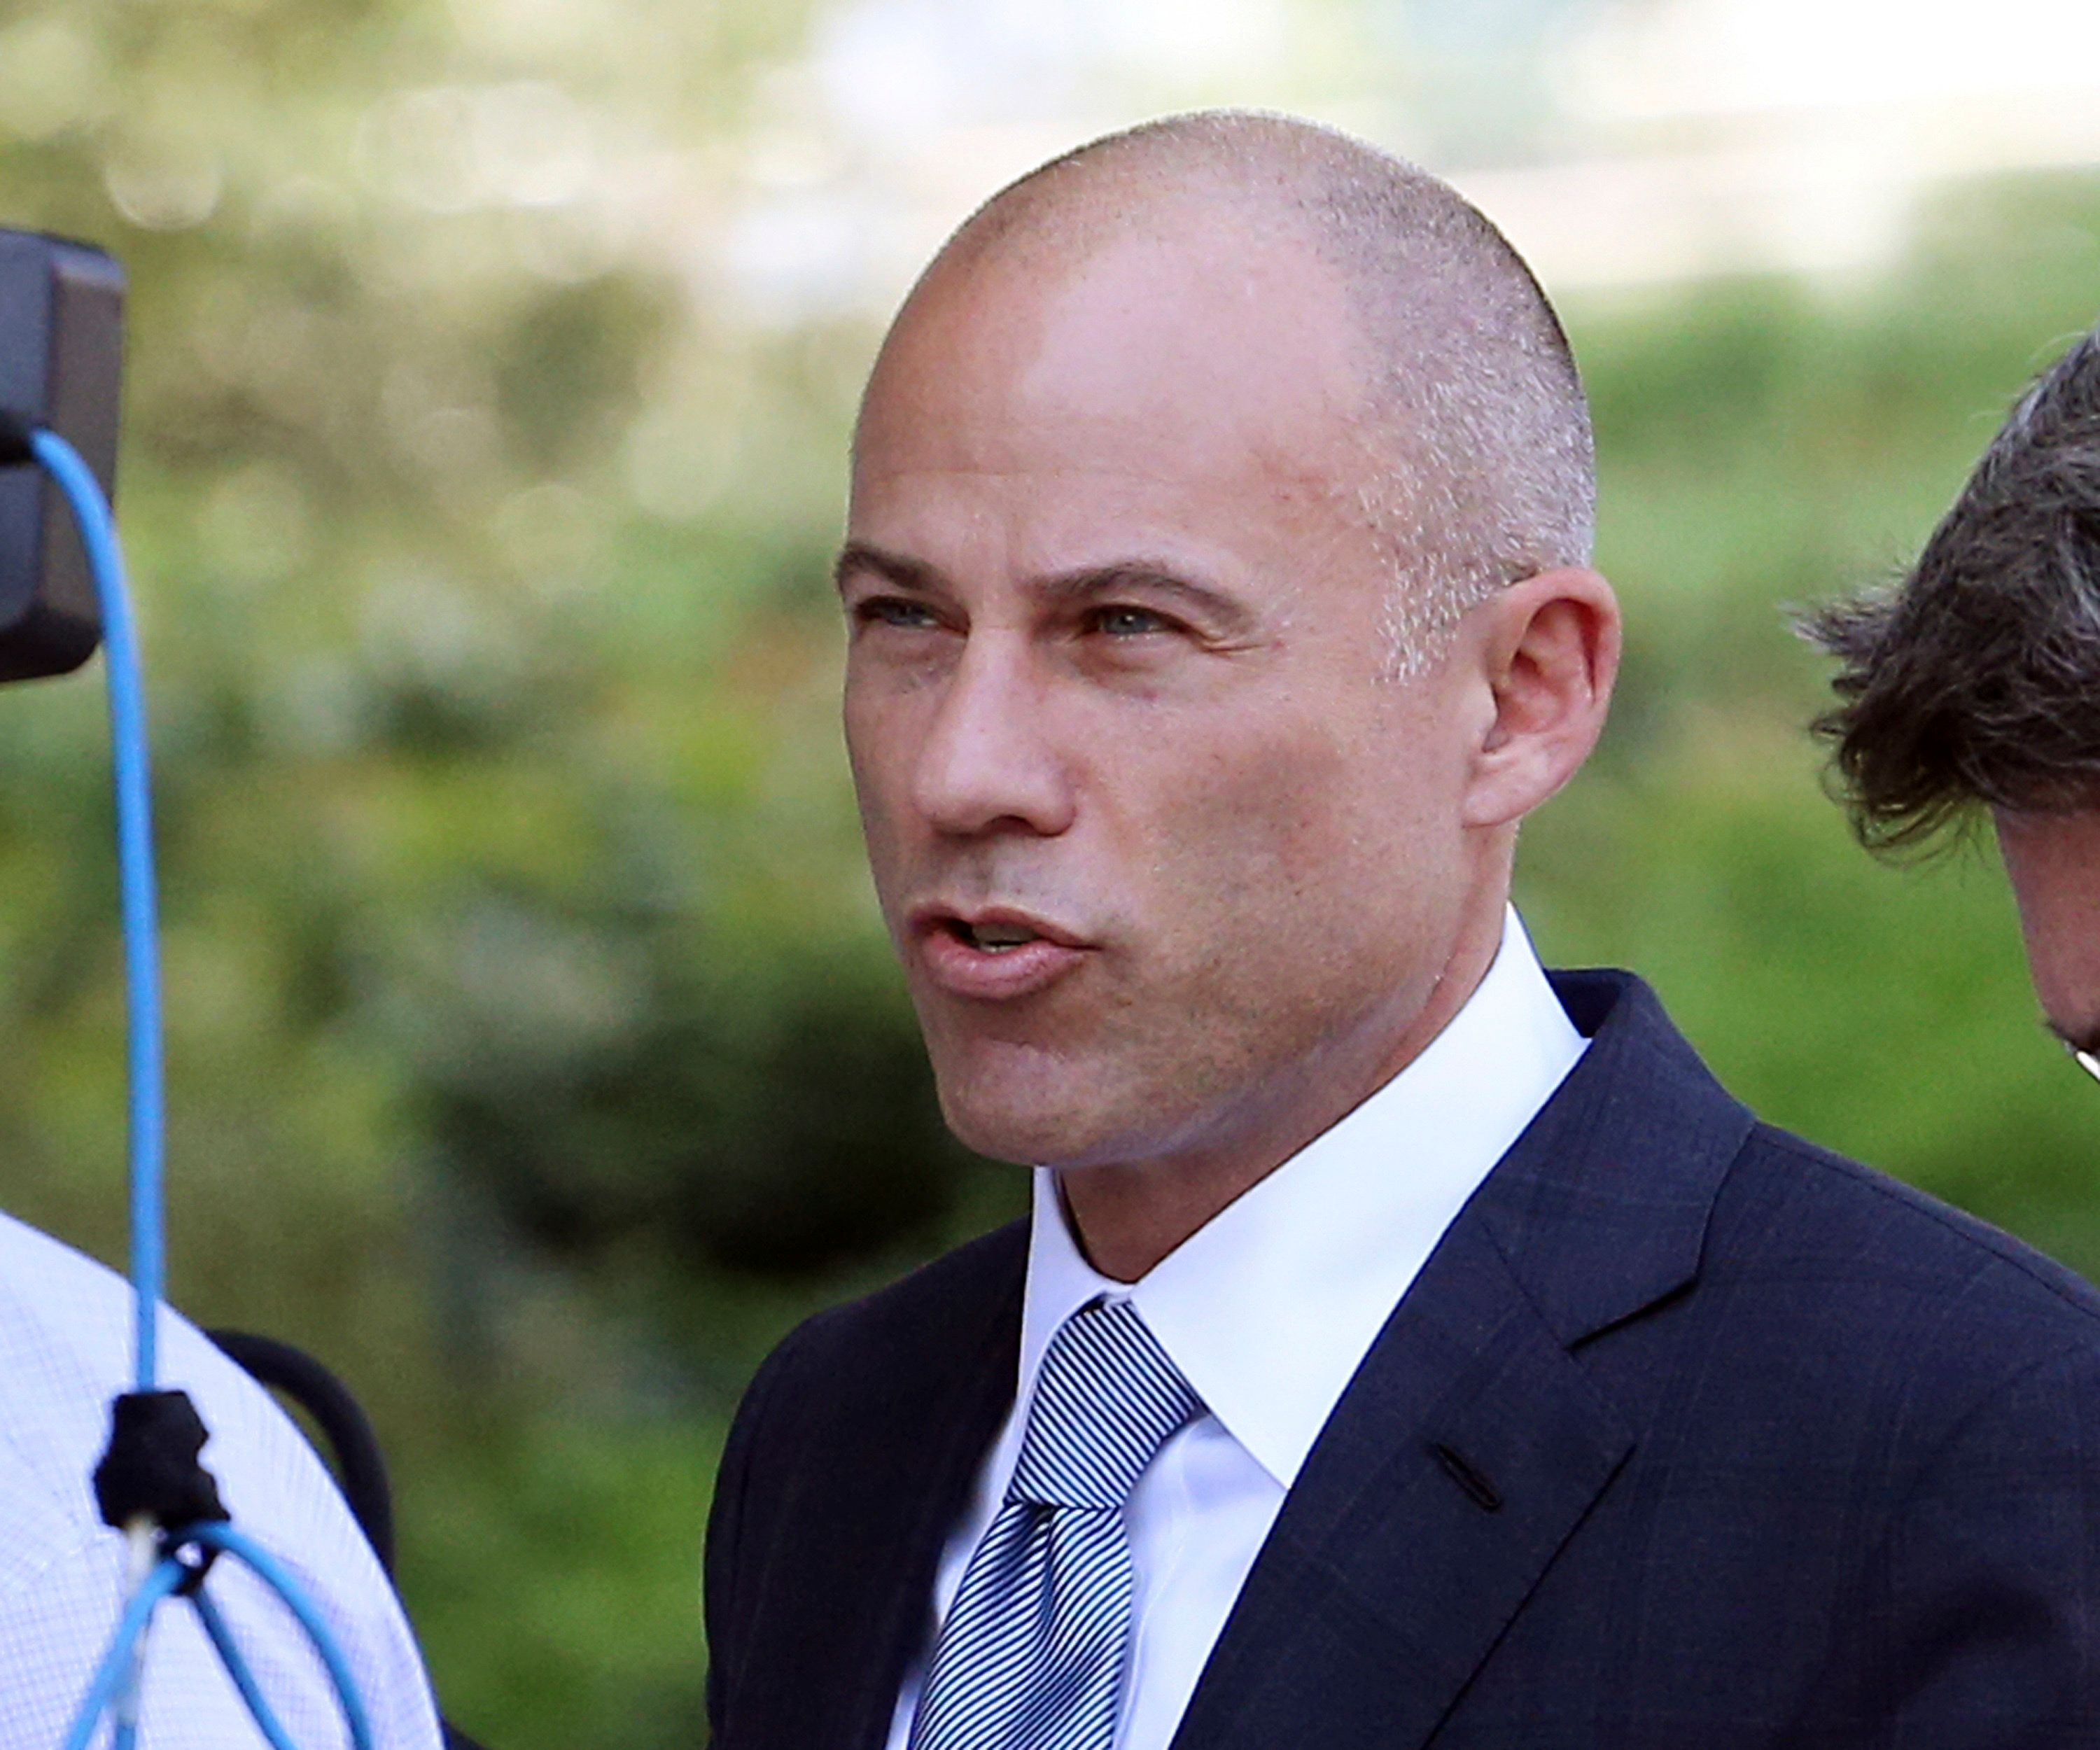 Stormy Daniels' Attorney Michael Avenatti Arrested After Domestic Violence